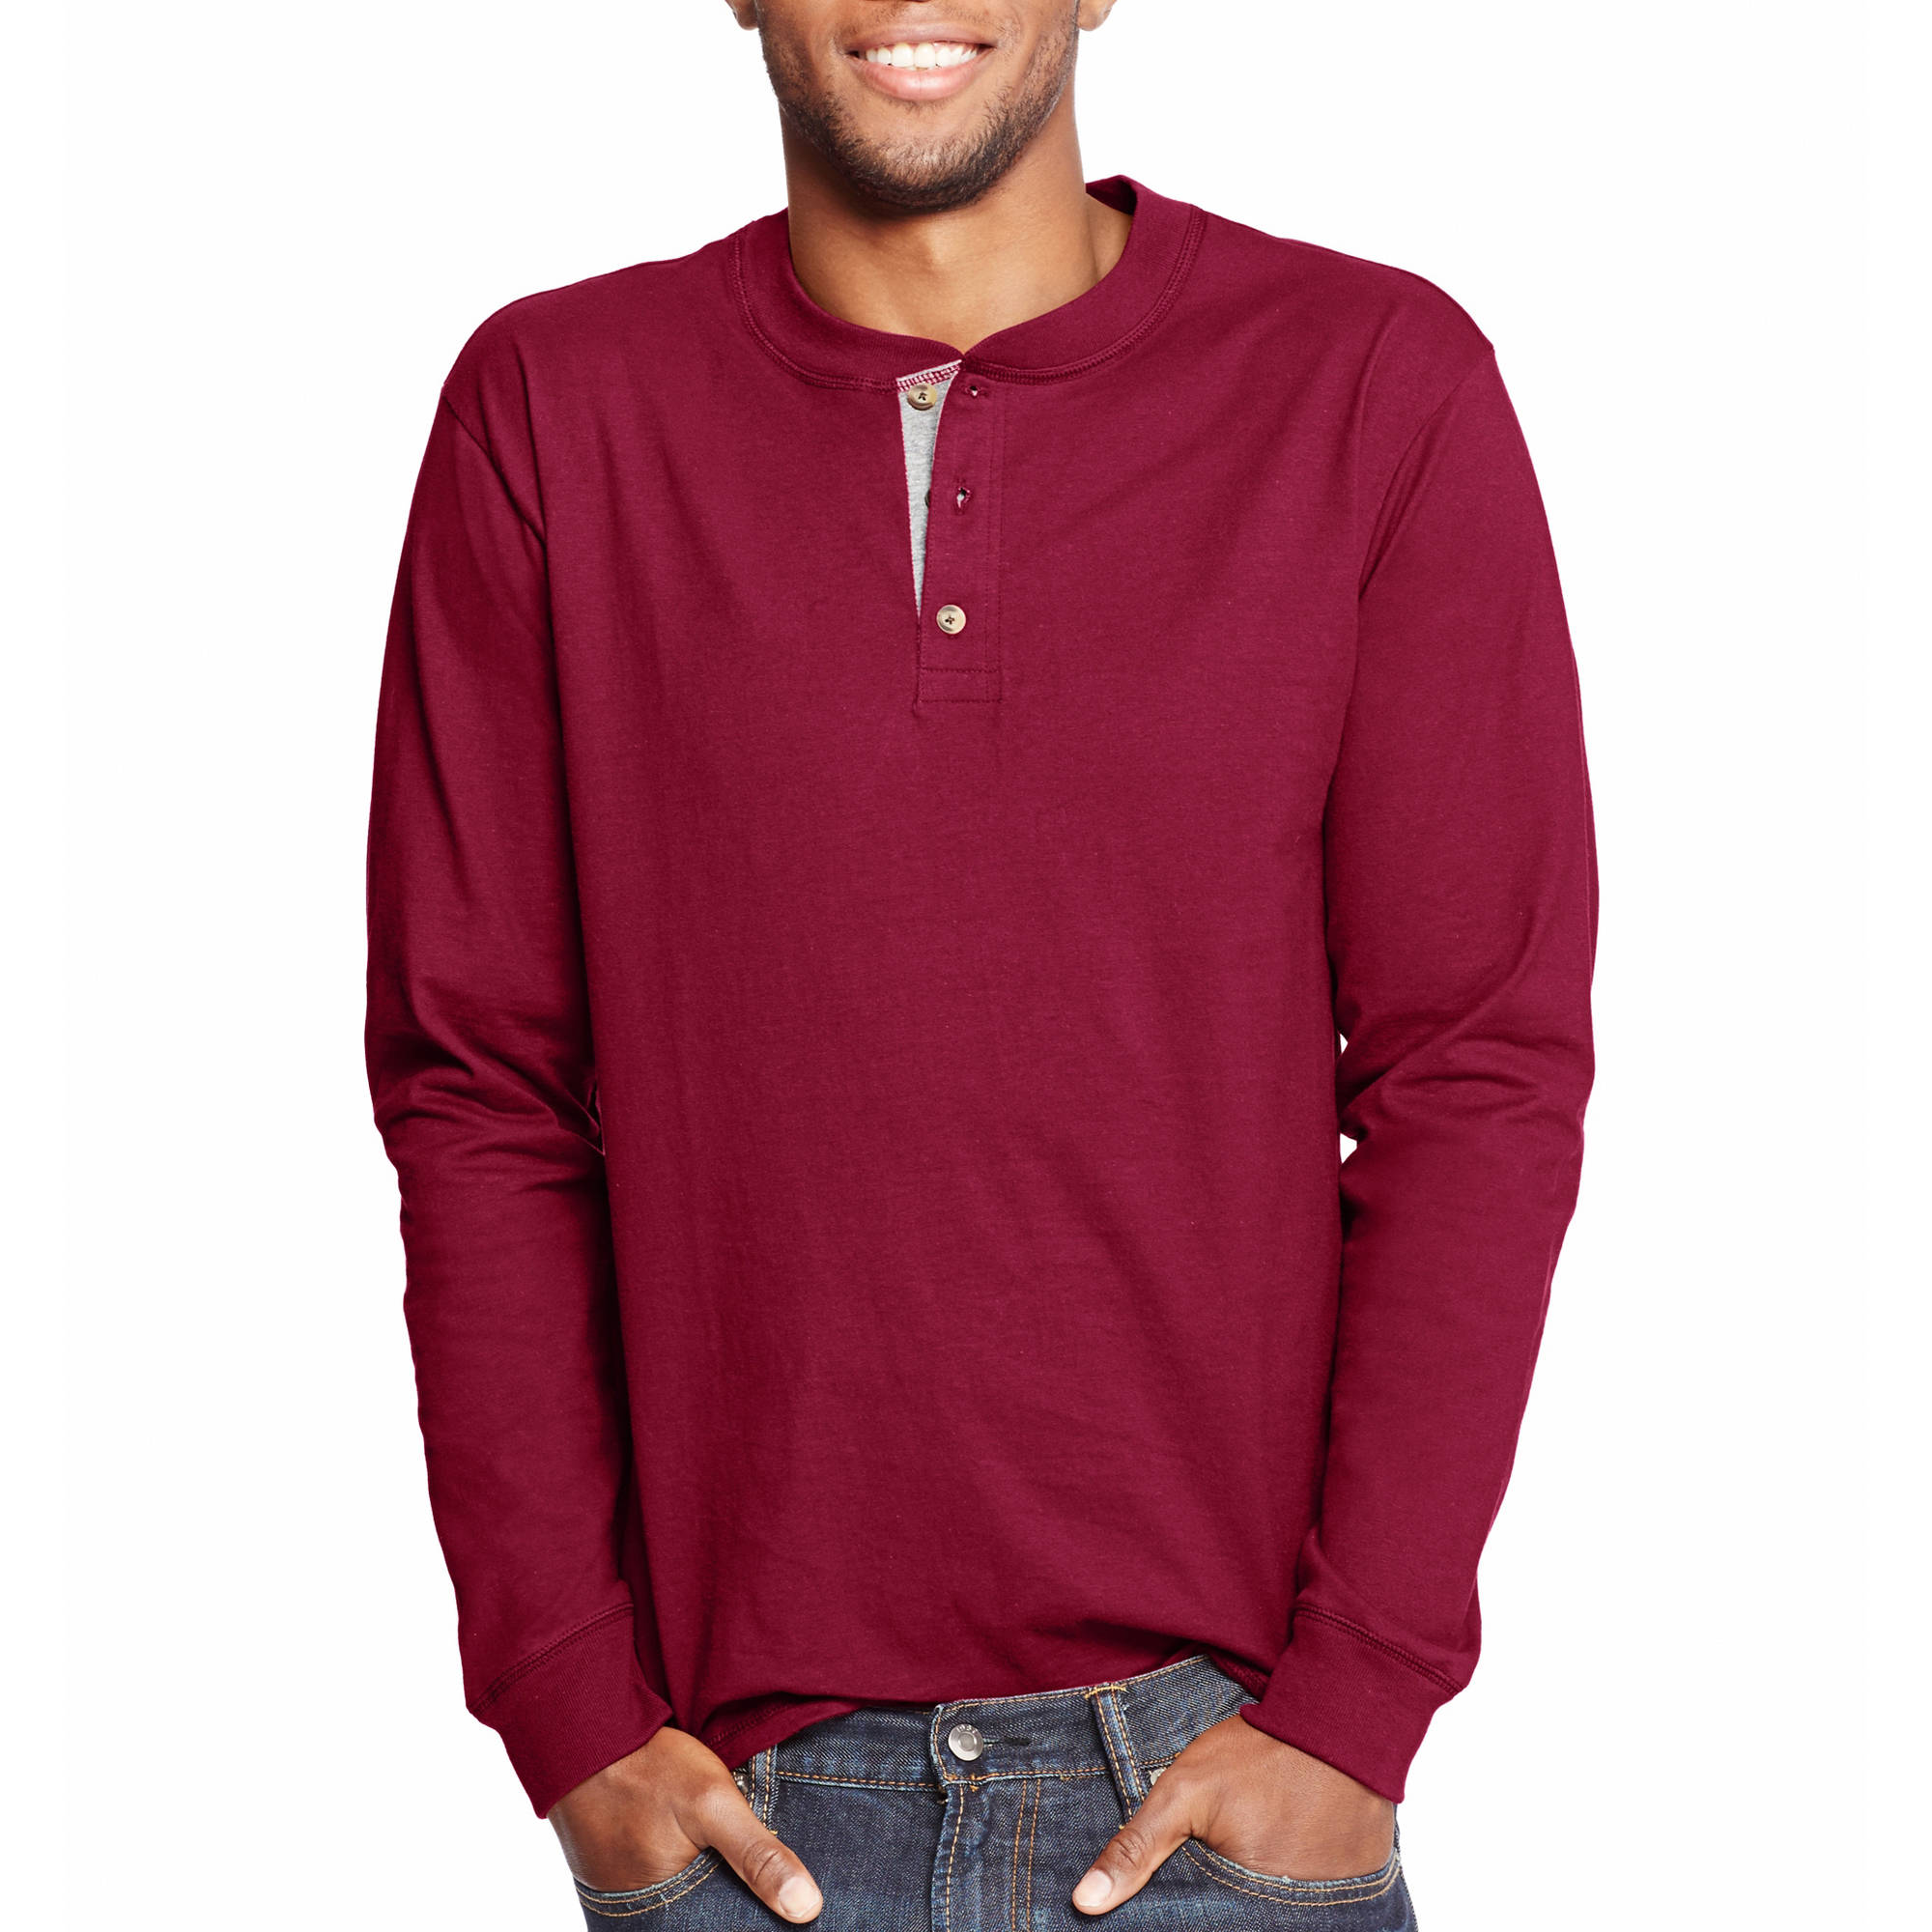 Hanes Men's Beefy Long Sleeve Henley T-shirt